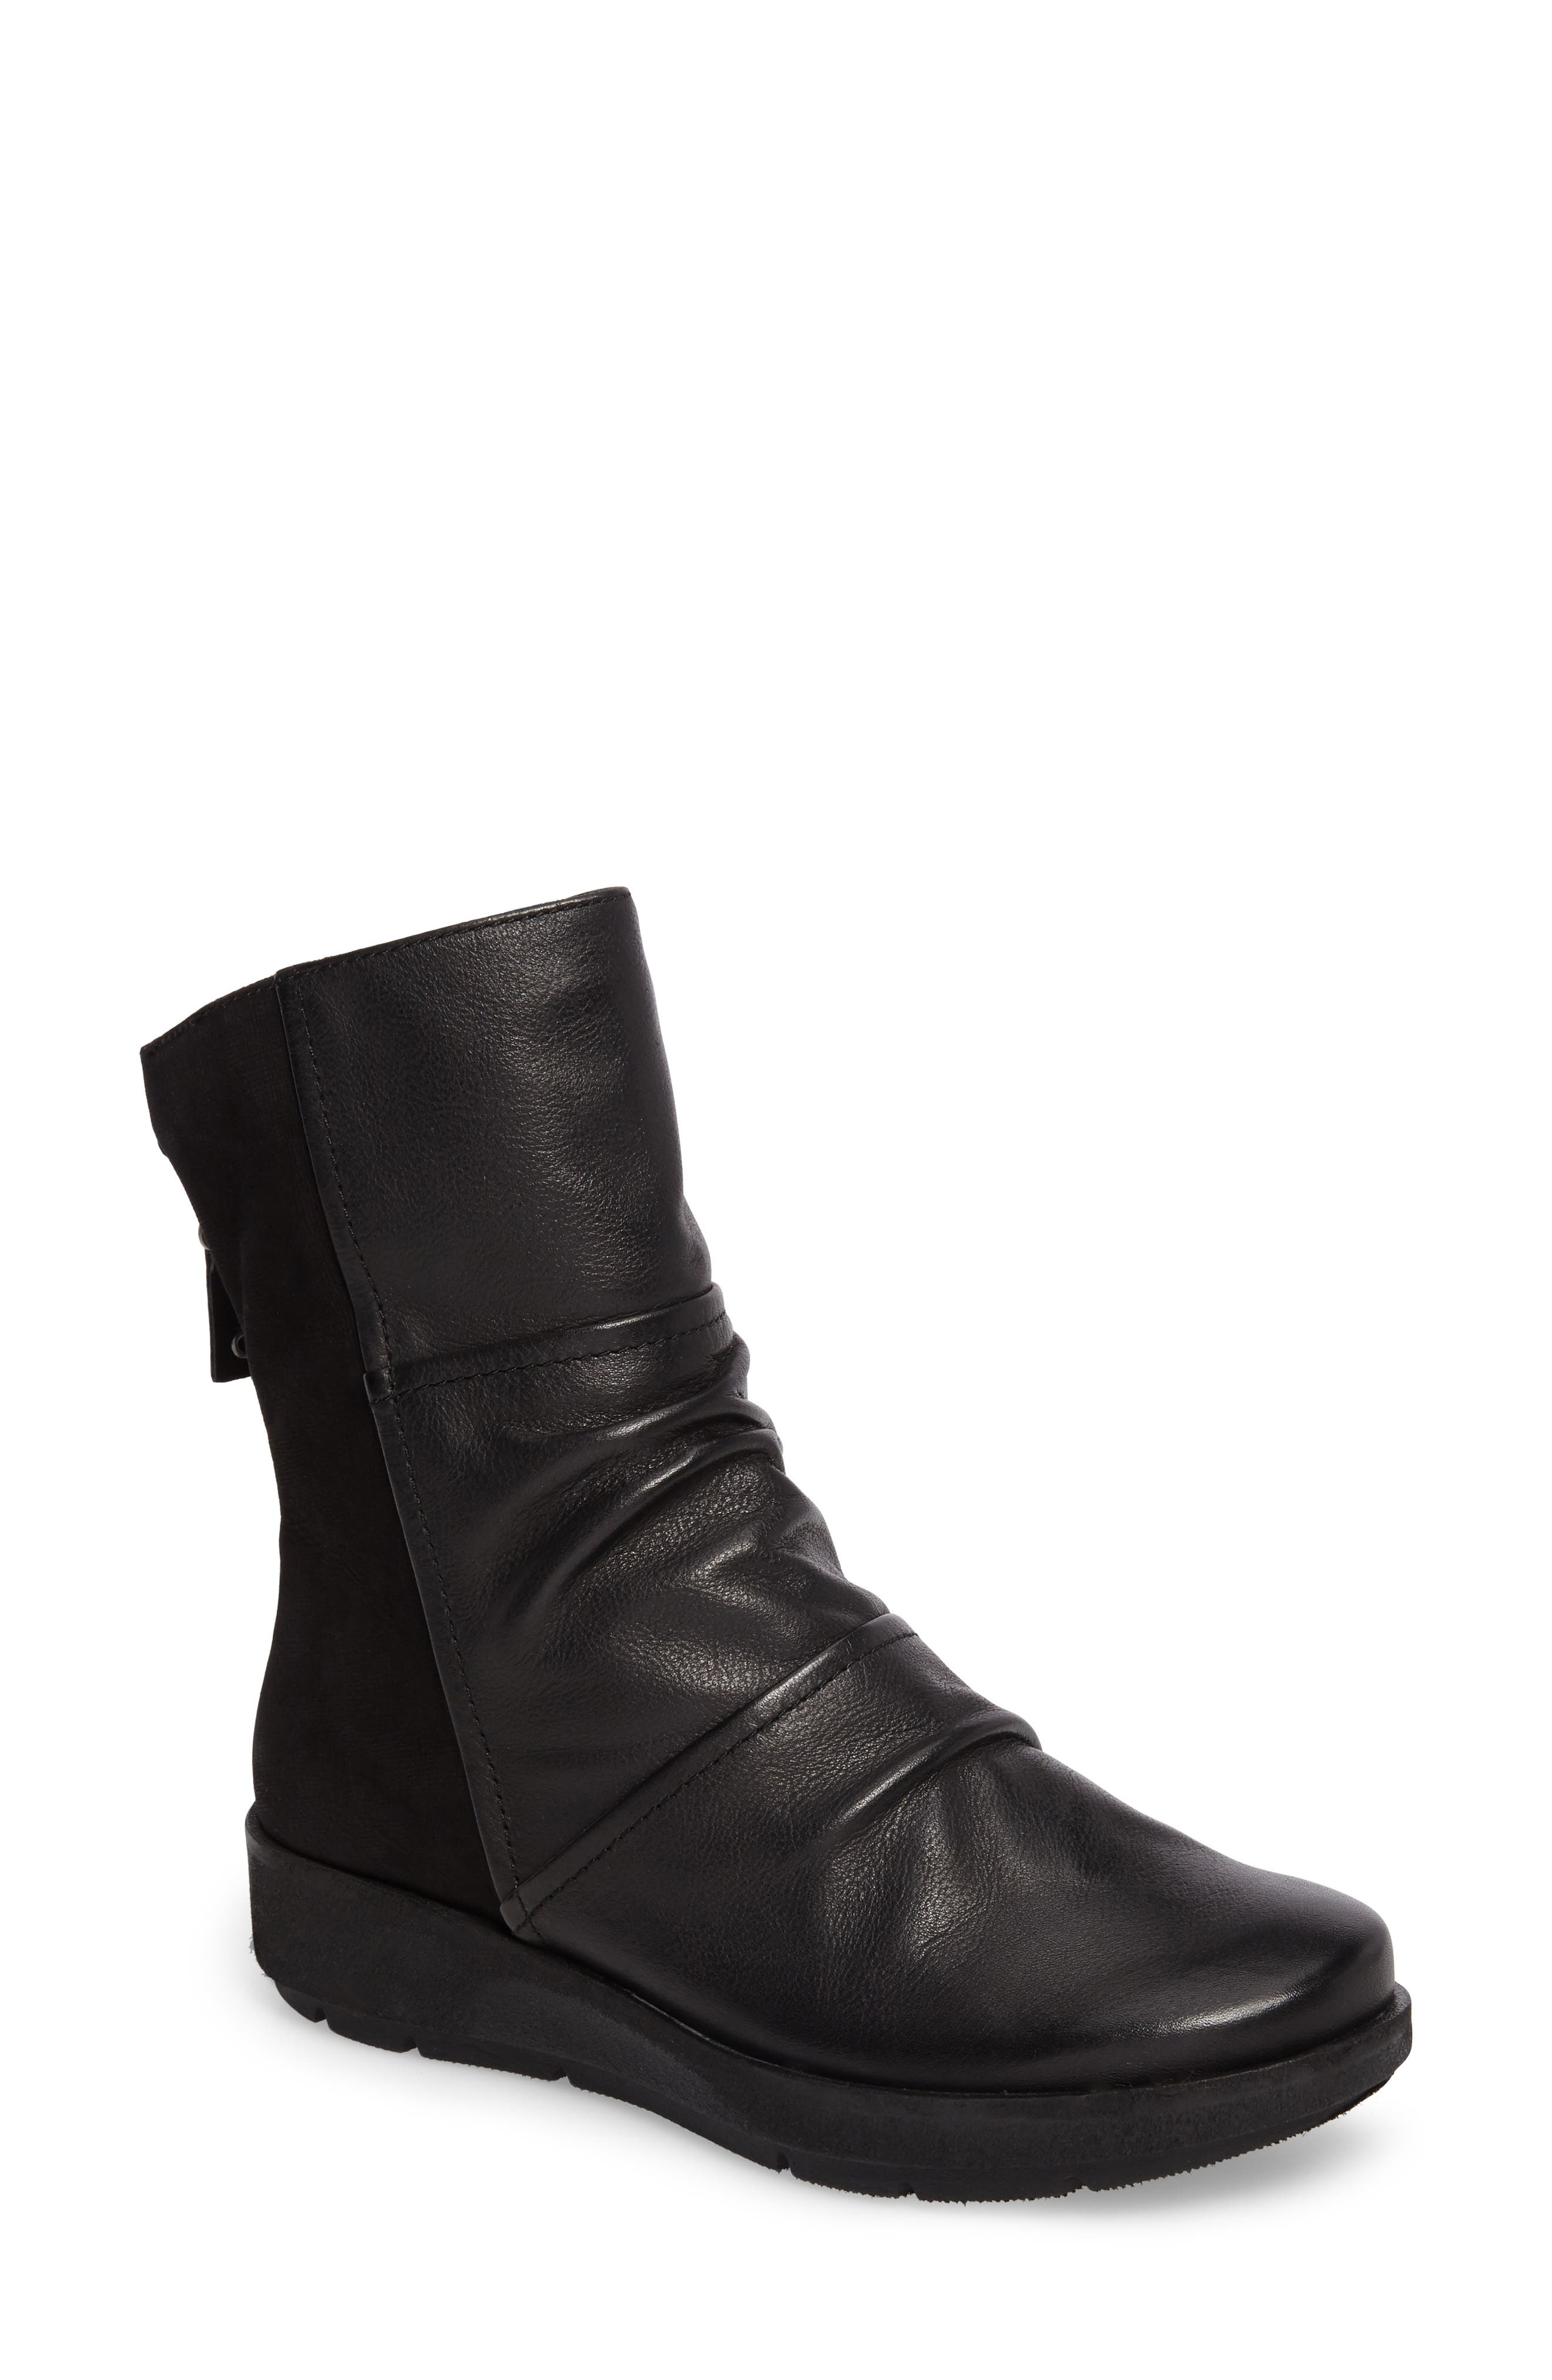 Otbt Pilgrim Boot- Black